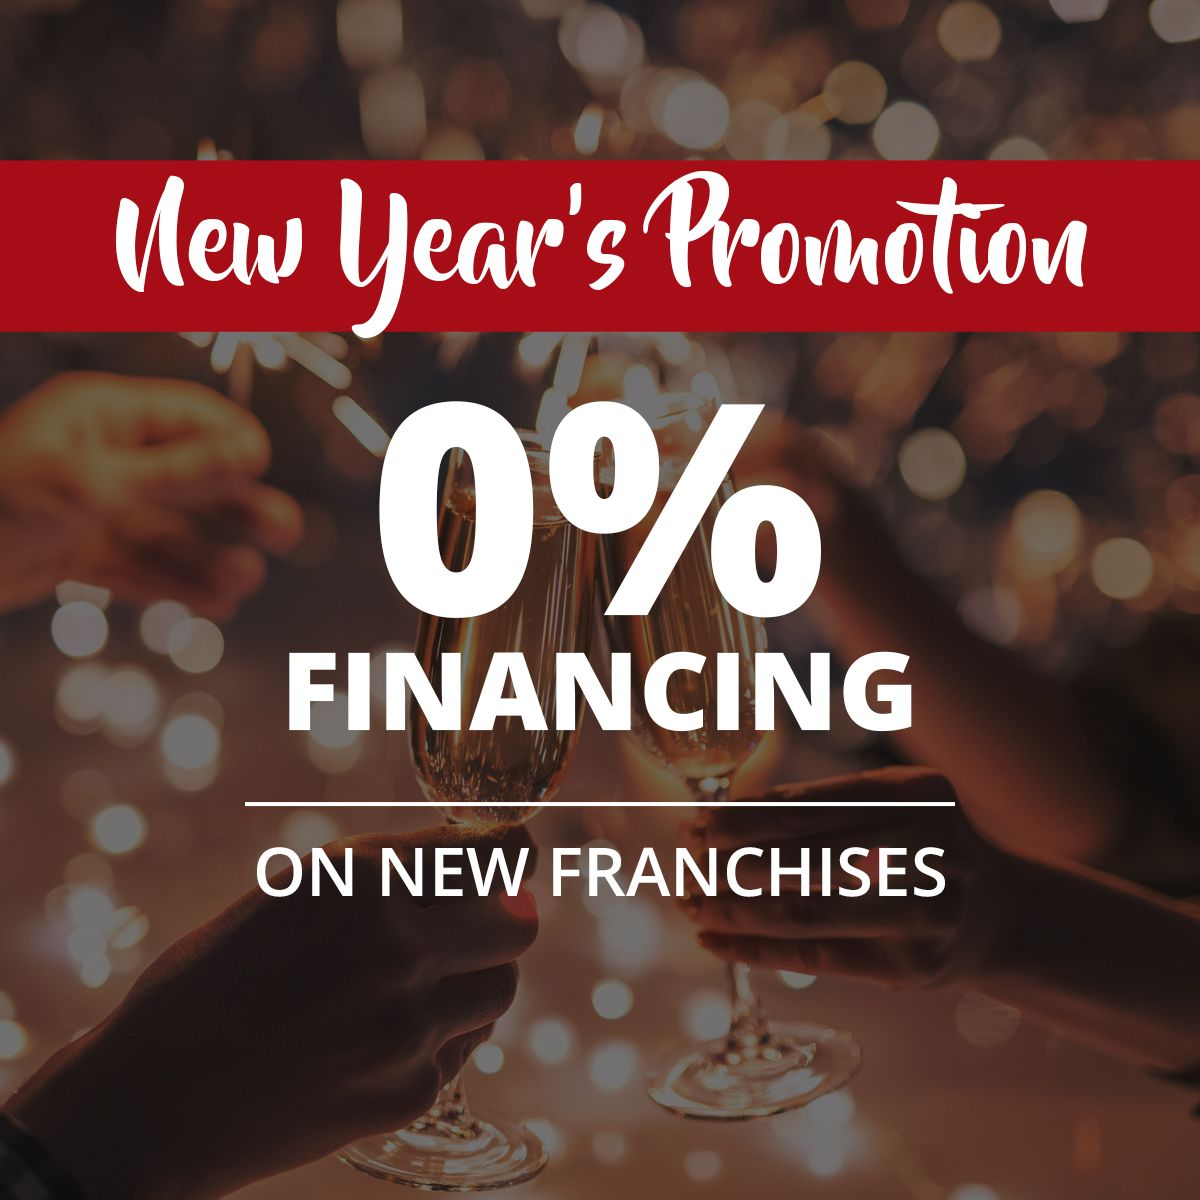 New Year's Promotion 0% Financing